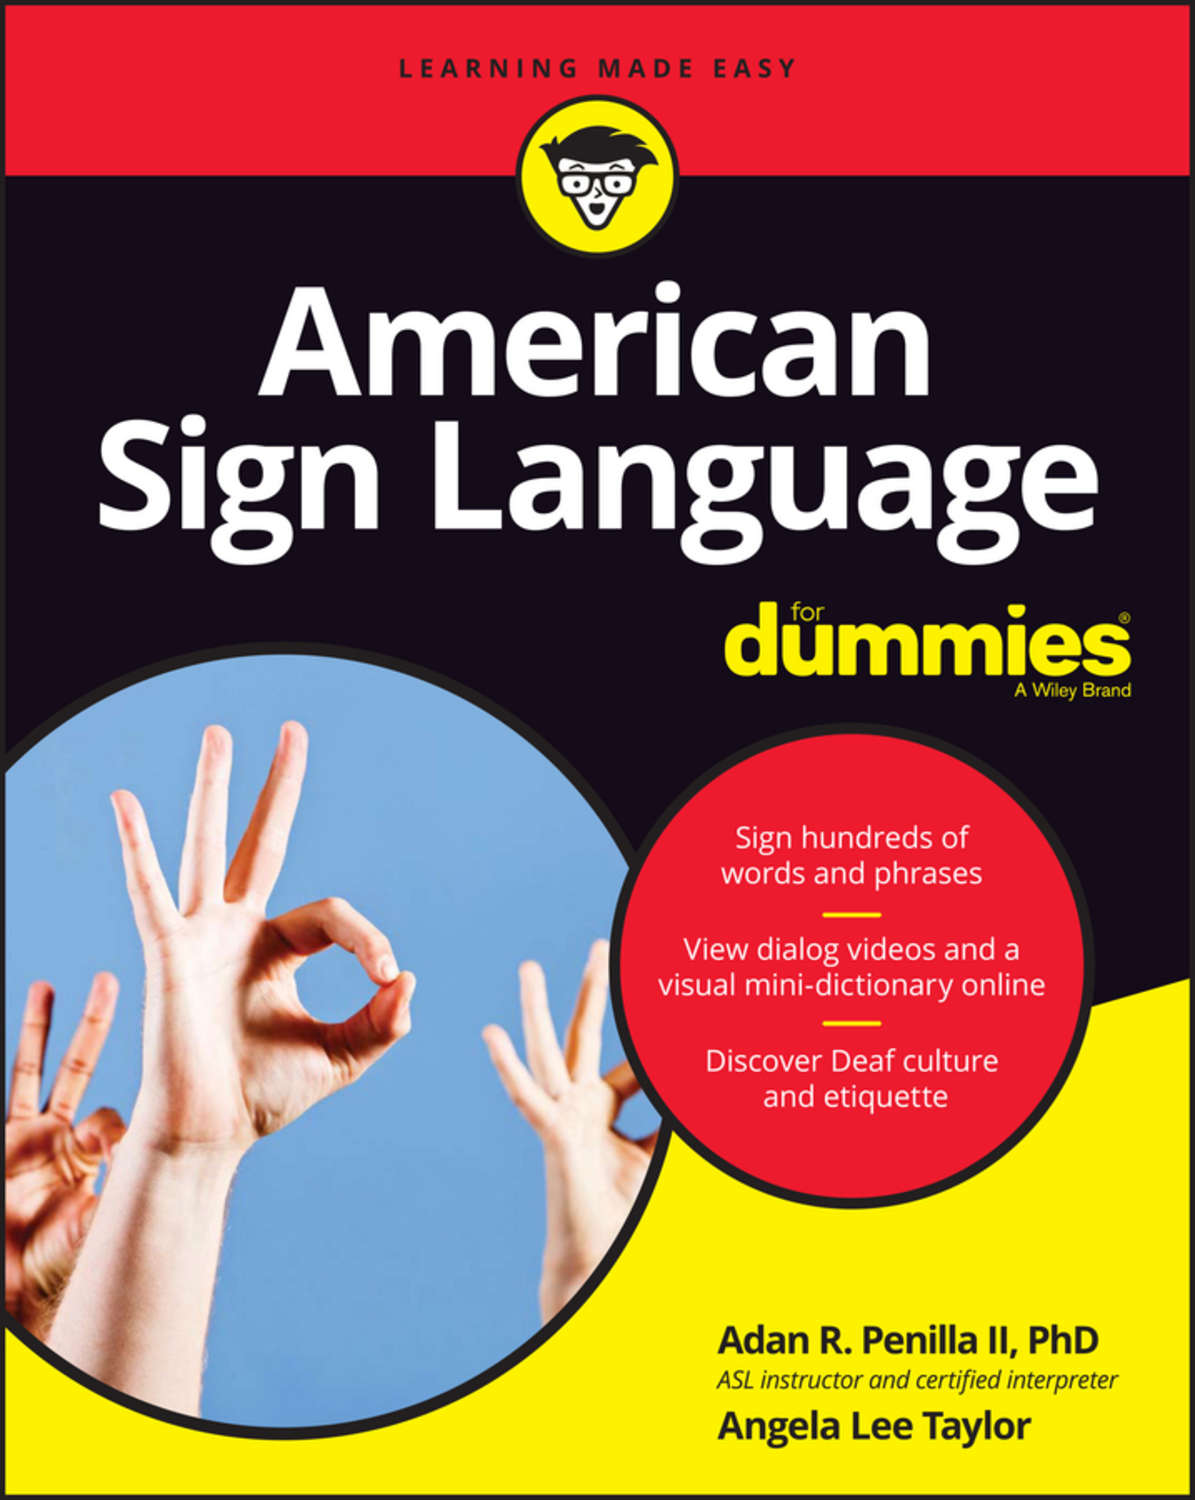 angela taylor lee   u043a u043d u0438 u0433 u0430 american sign language for